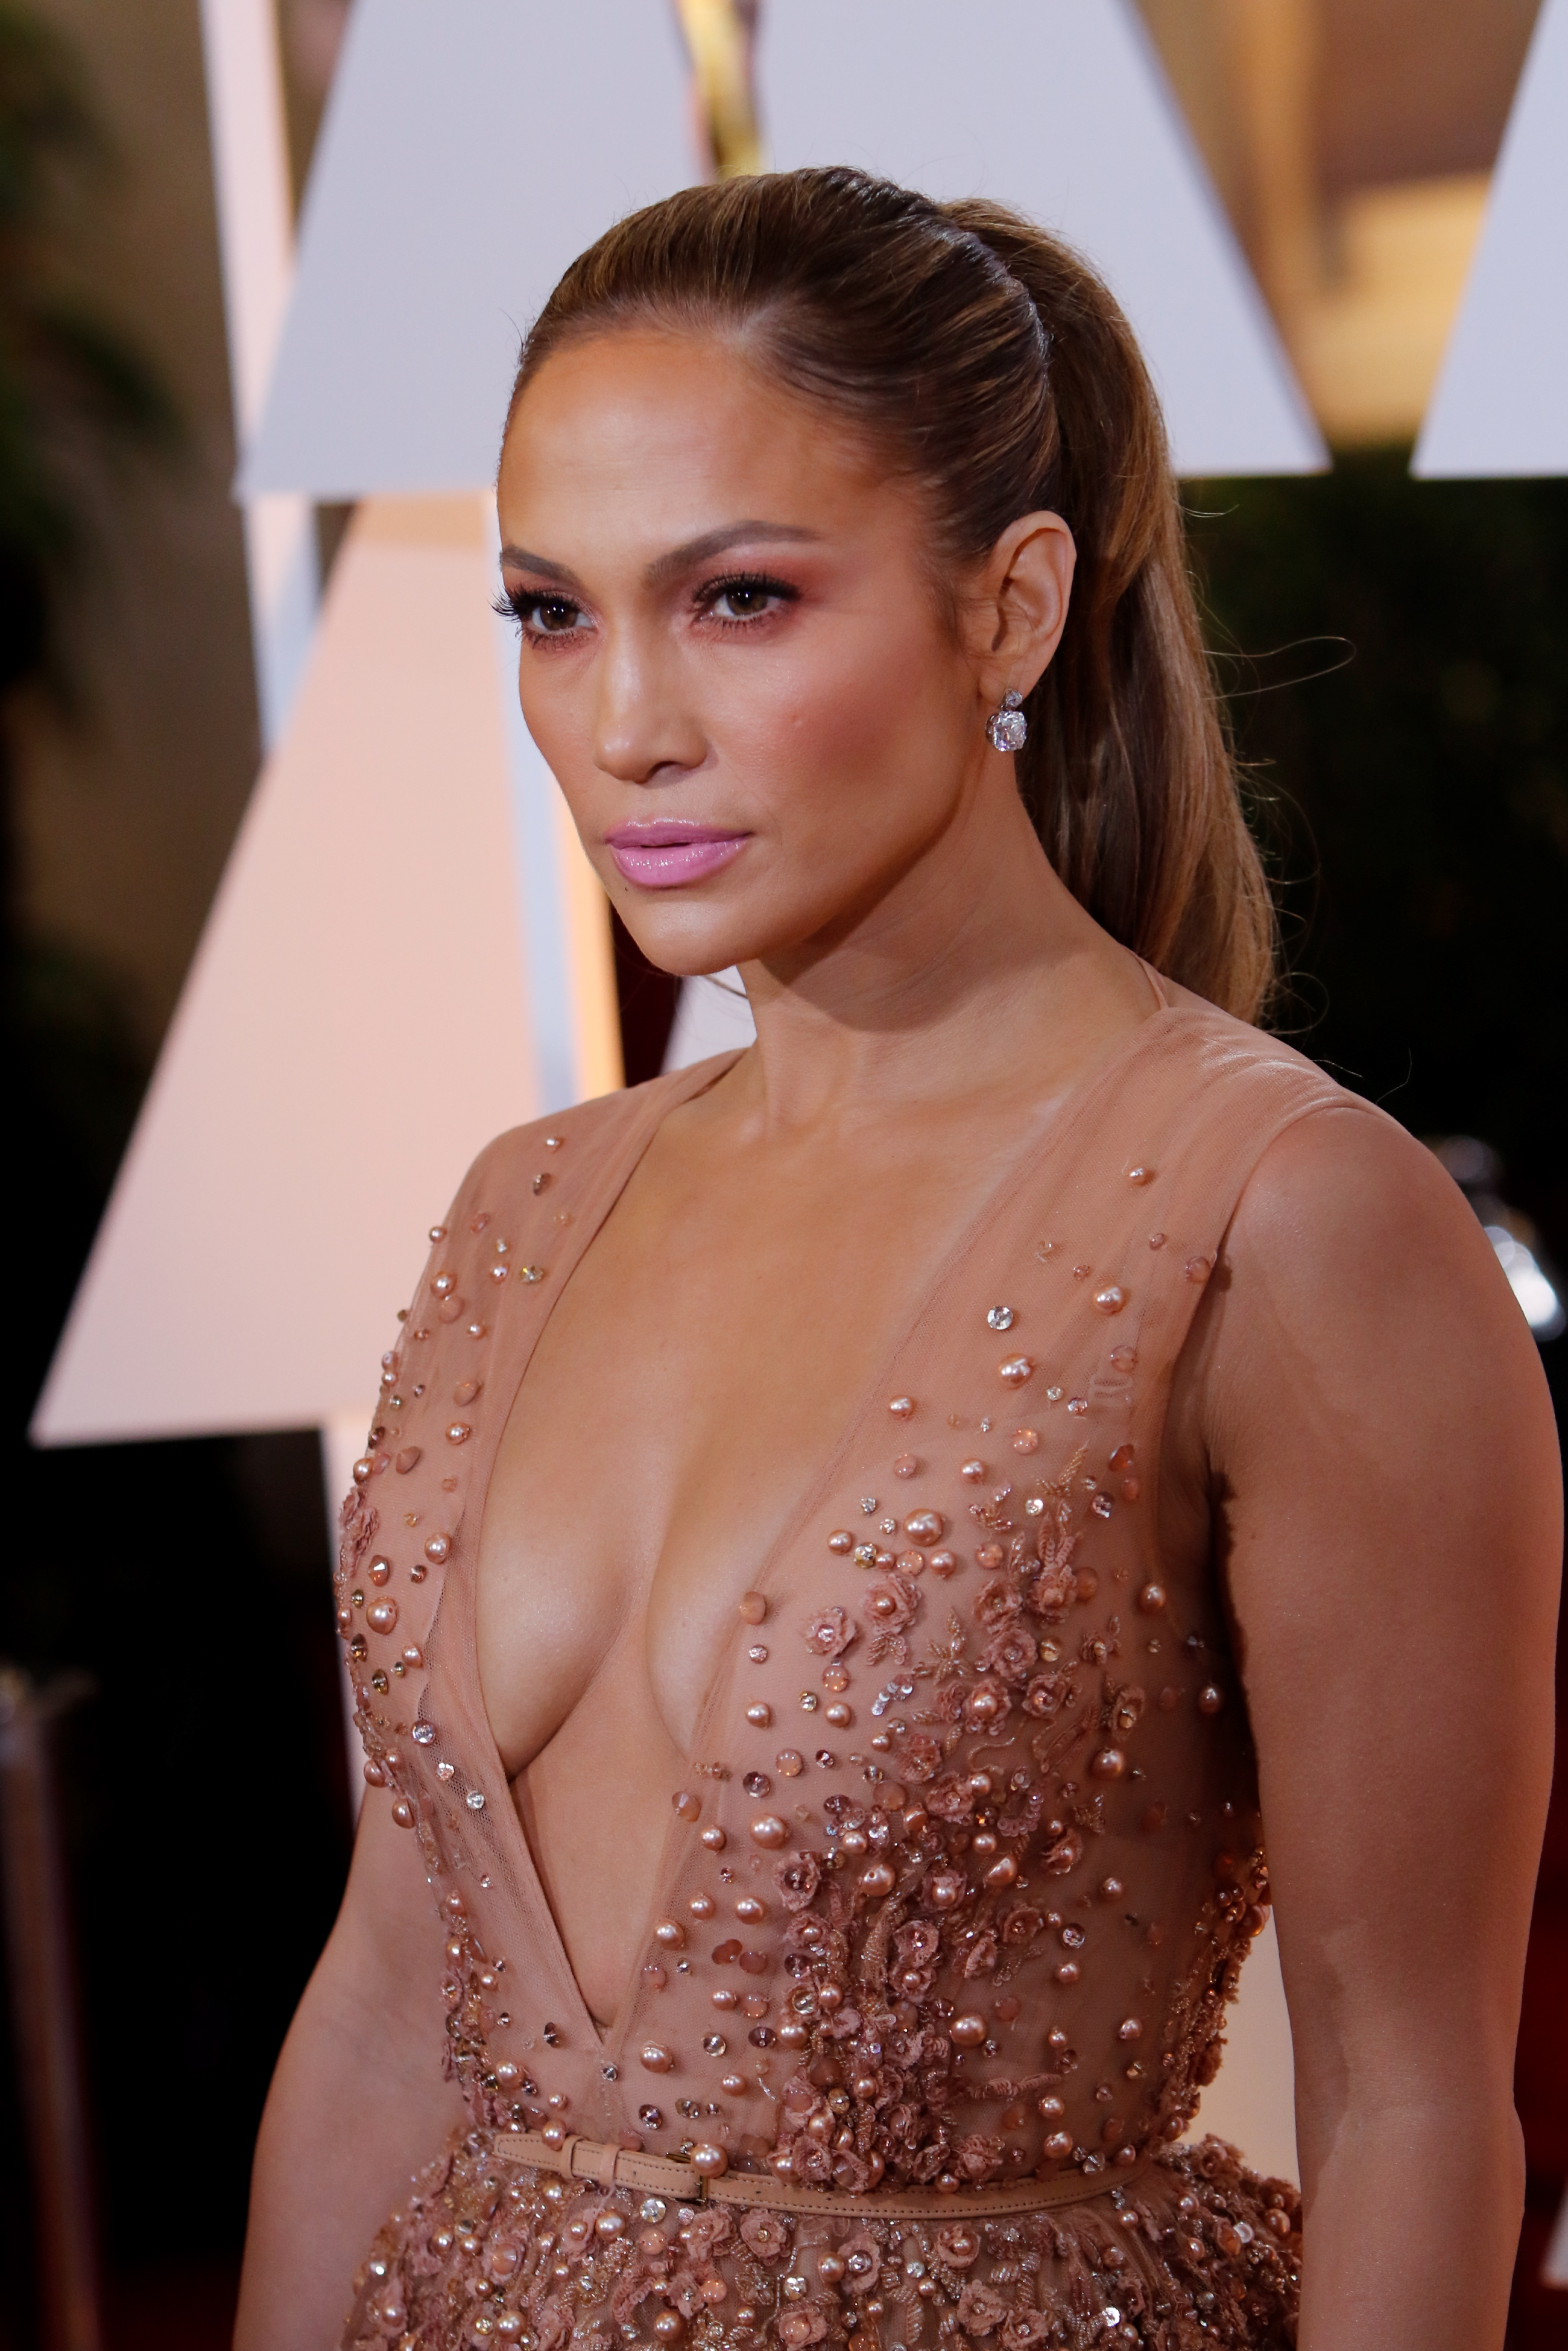 Actress Jennifer Lopez attends the 87th Academy Awards, Oscars, at Dolby Theatre in Los Angeles, USA, on 22 February 2015.